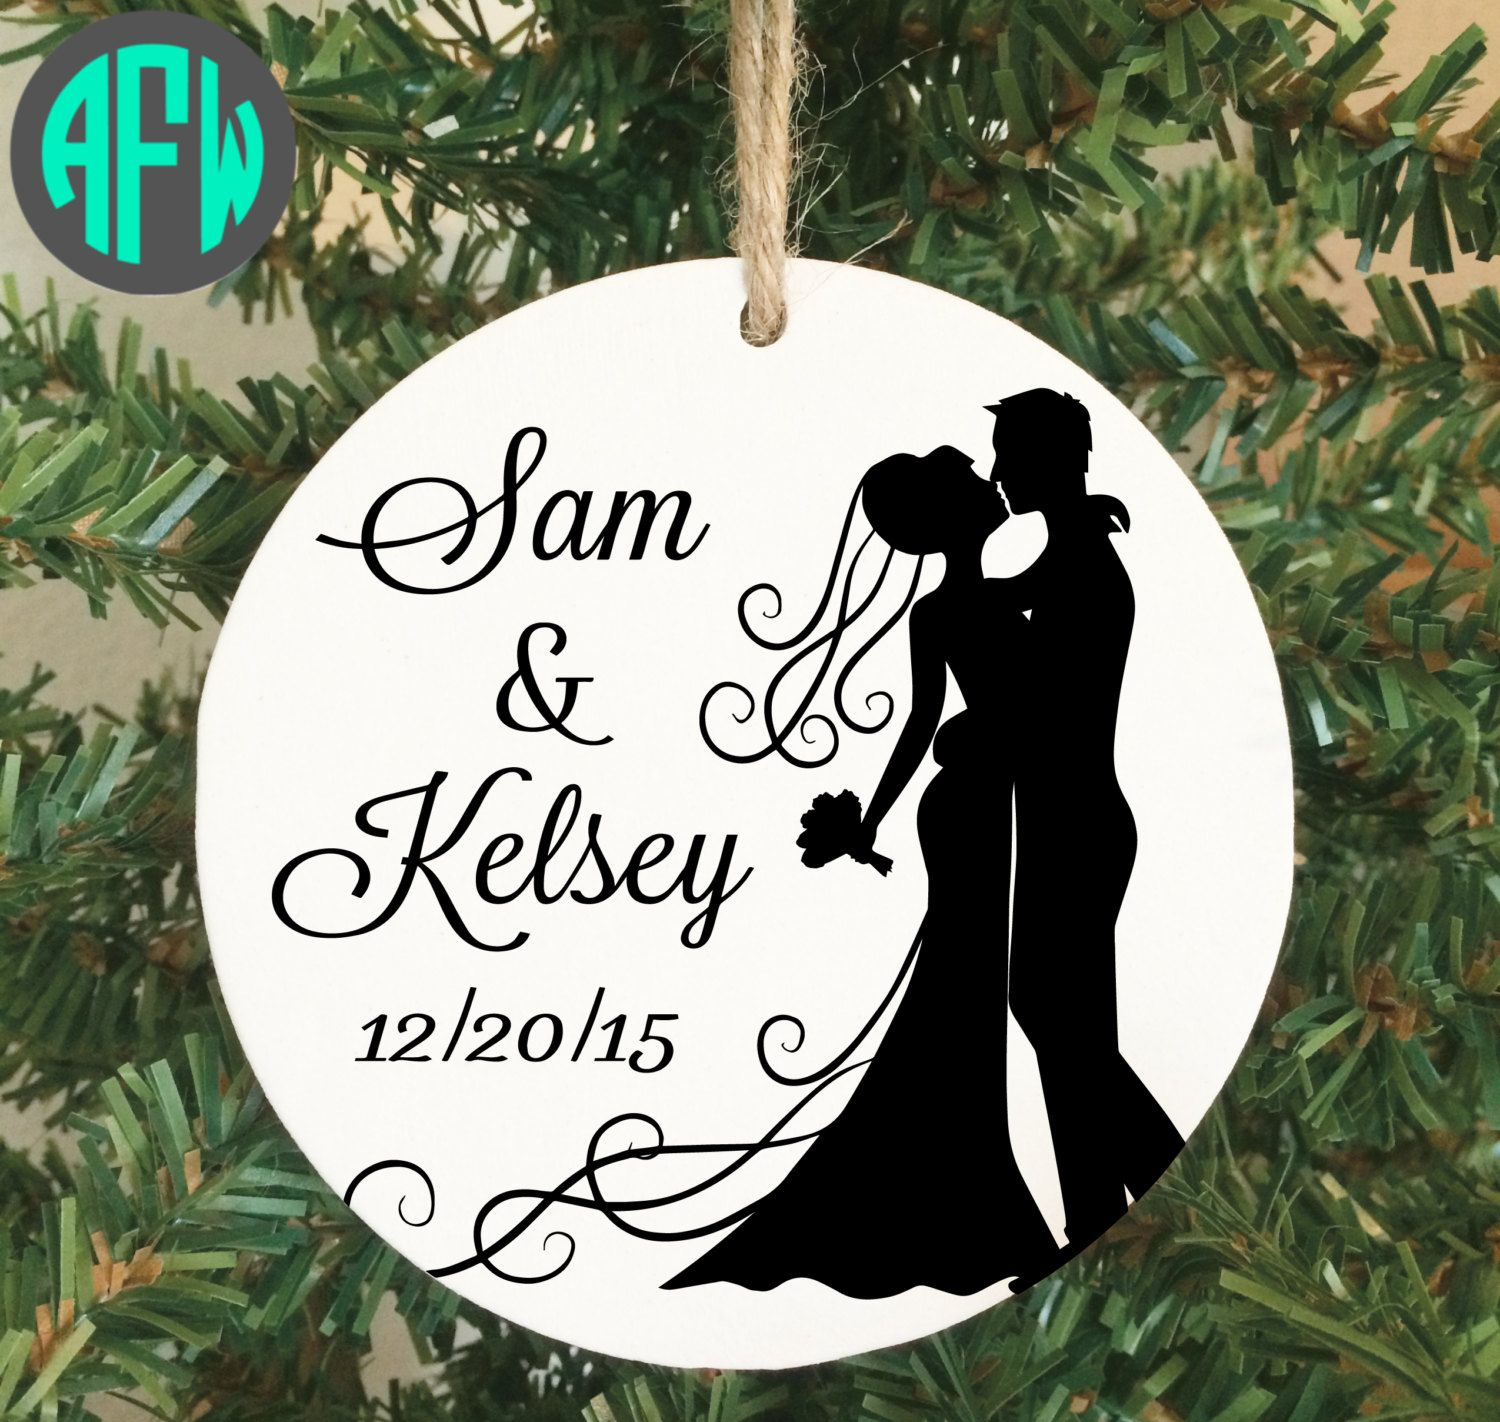 Personalized couples christmas ornaments - Our First Christmas Ornament Personalized Couples Gift Wedding Gift Newlywed Just Married Mr And Mrs Bridal Shower Gift Christmas